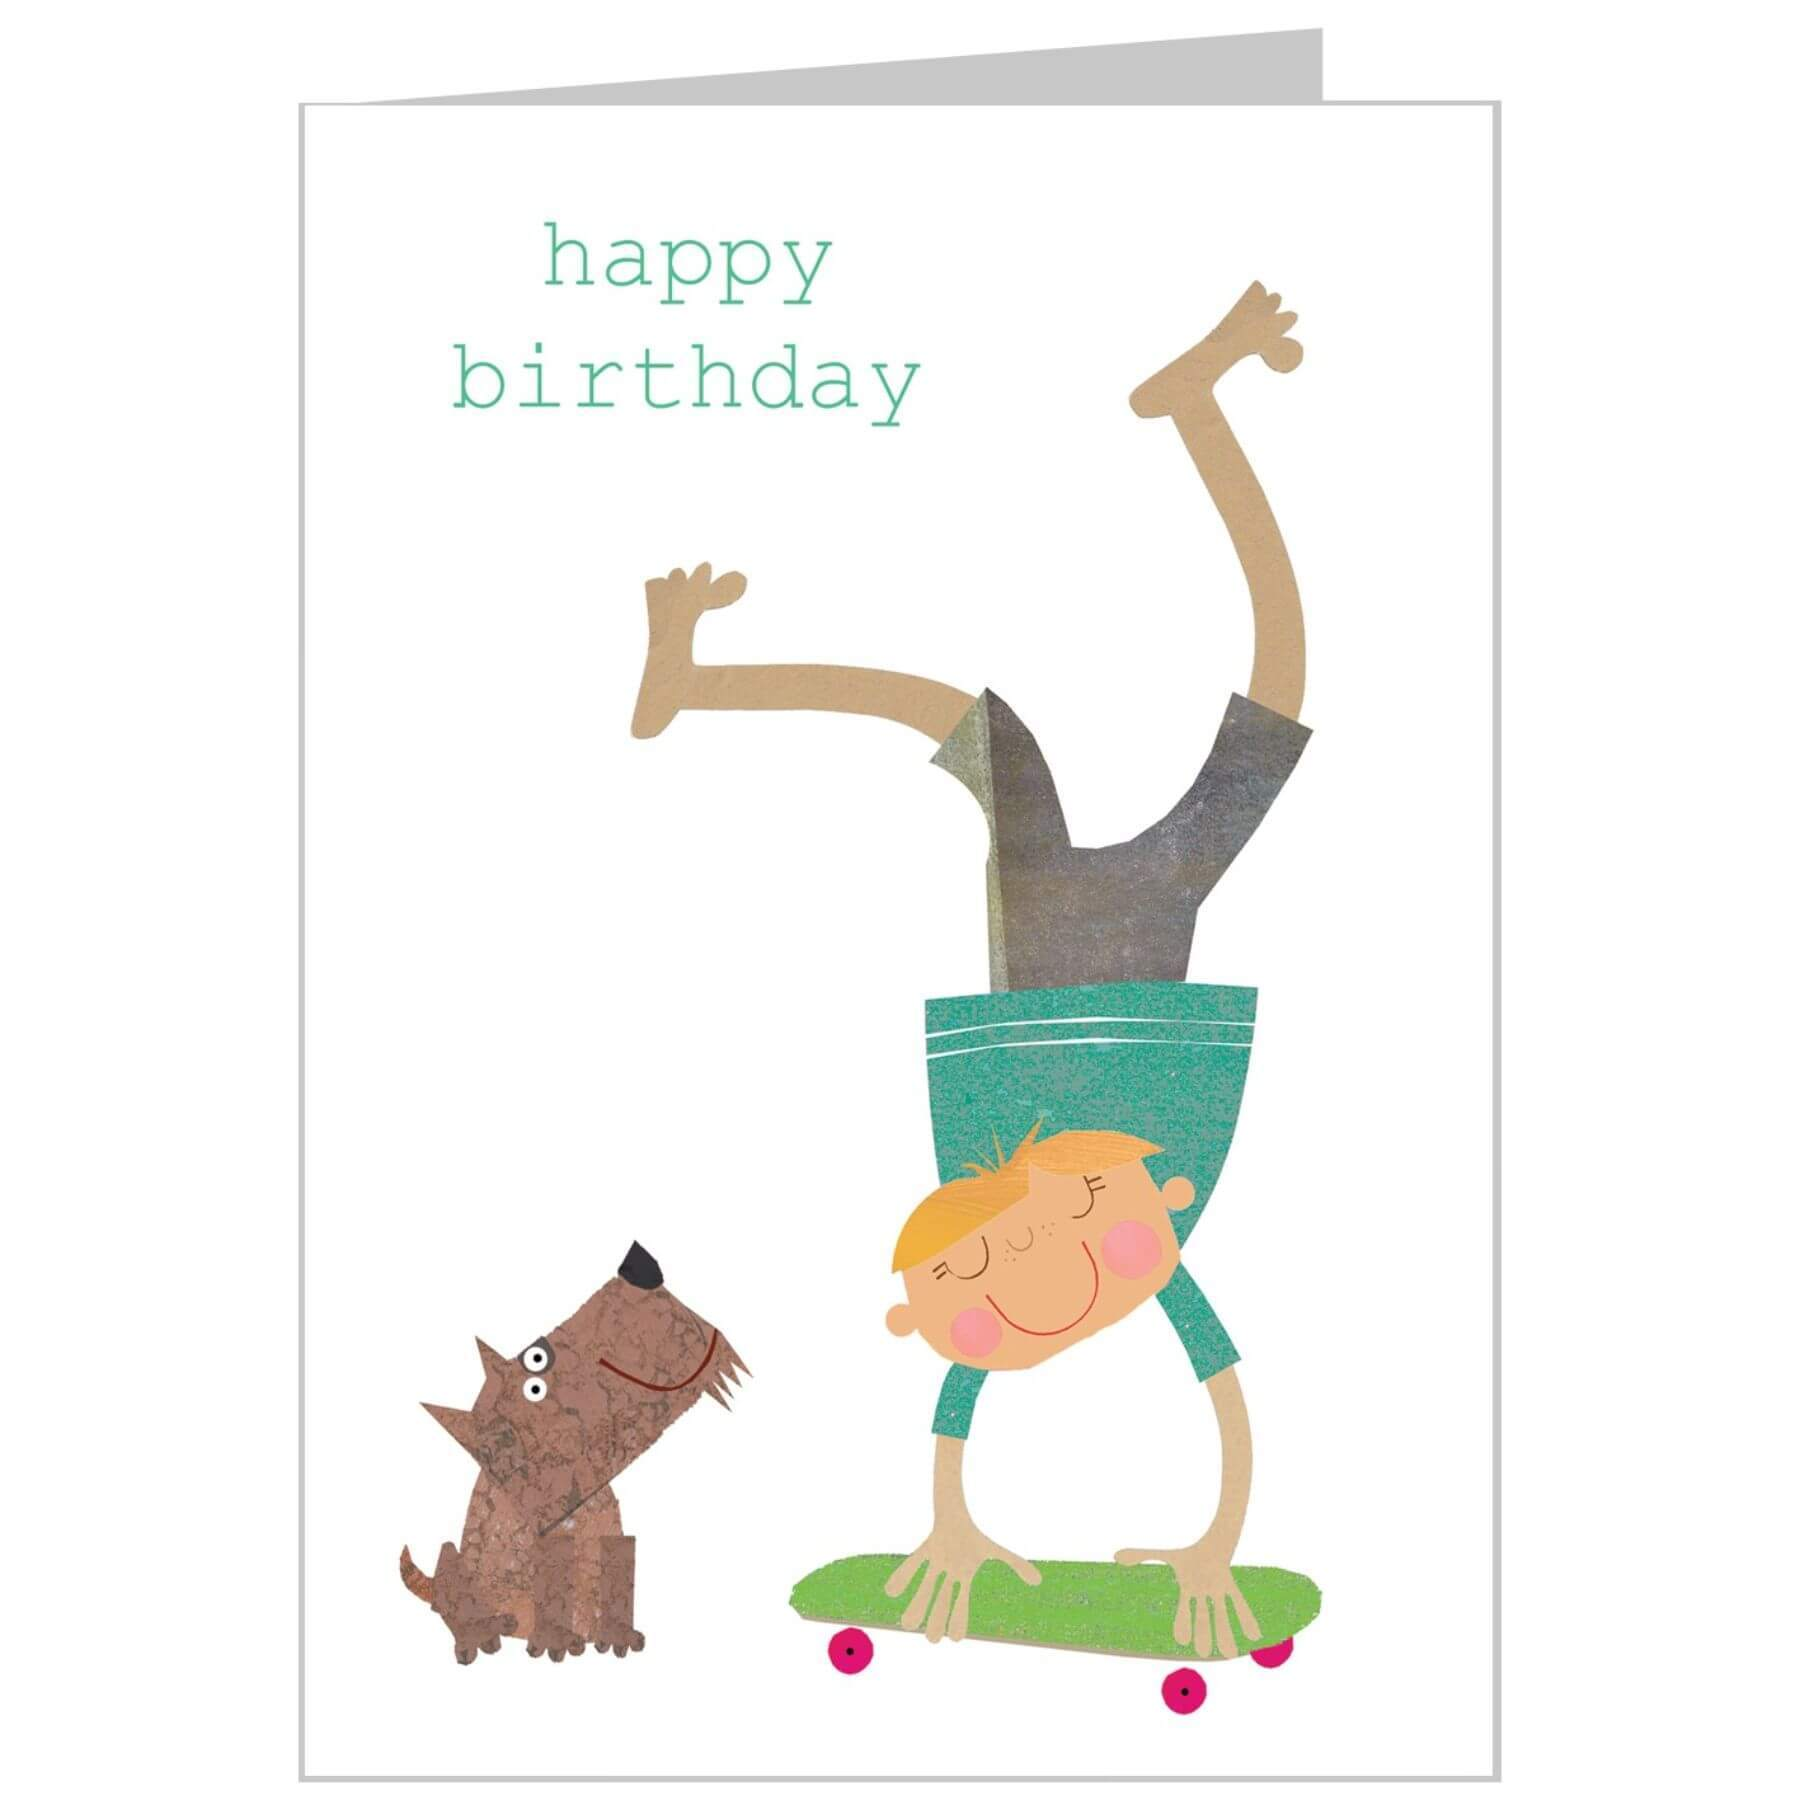 The Square Card Company Skateboarder Birthday Card